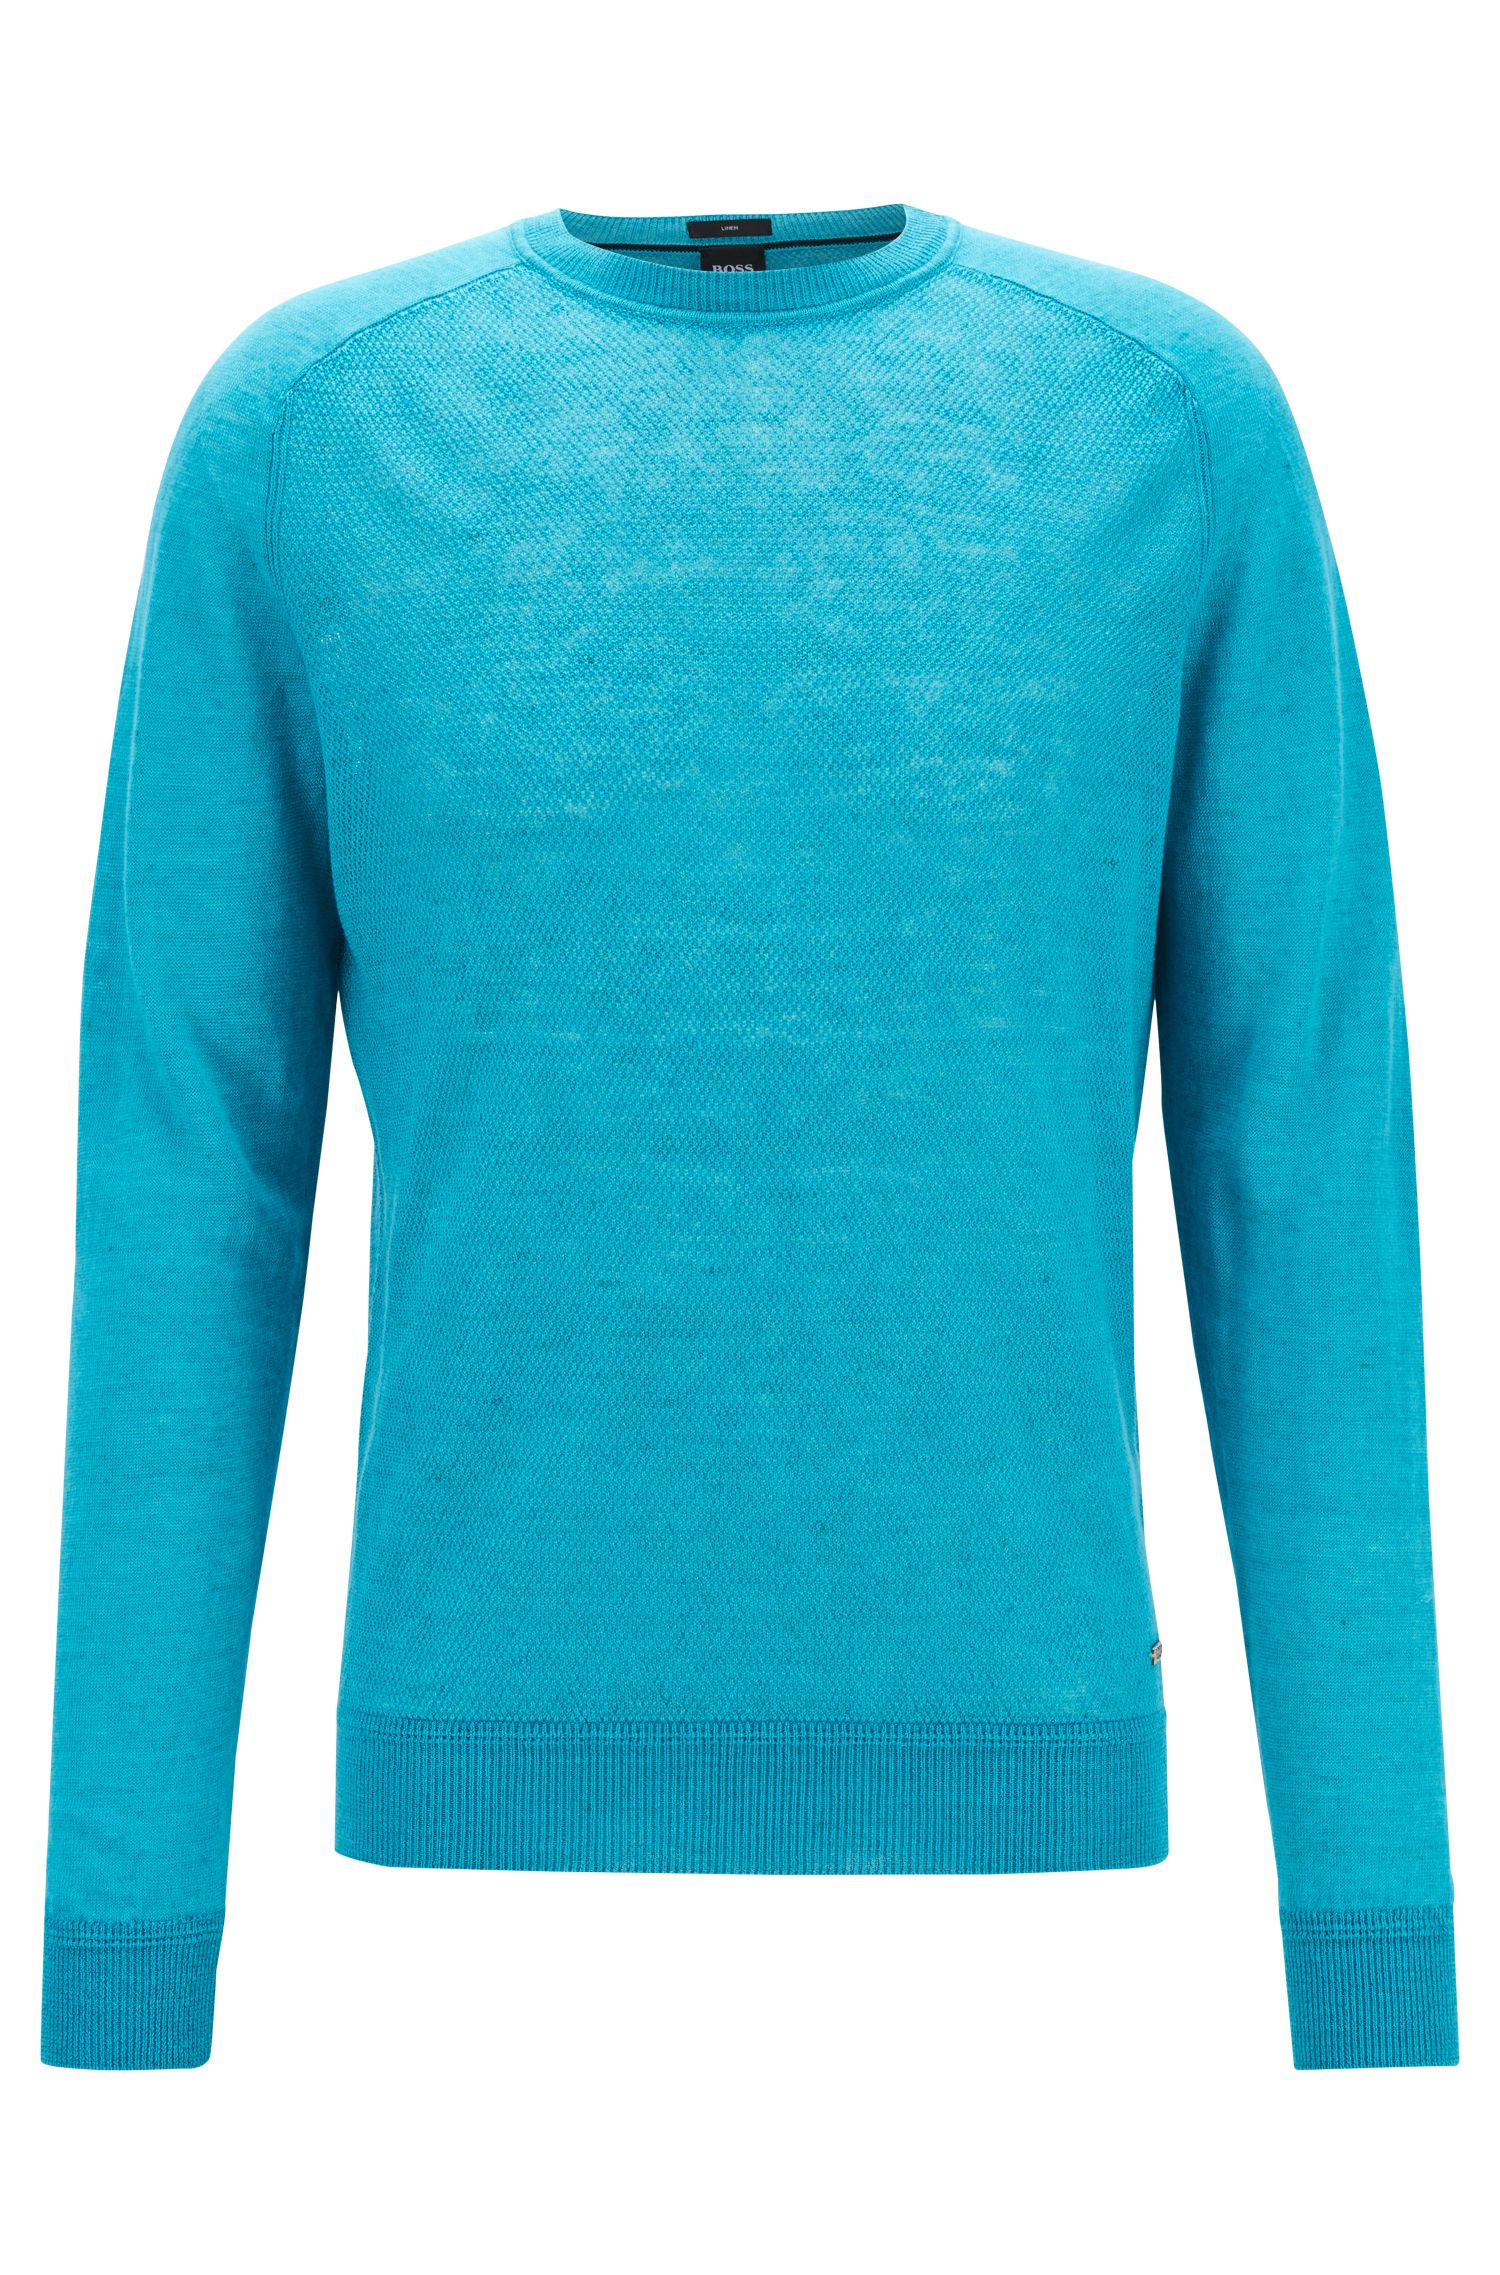 Micro-structured sweater in melange linen with ottoman detailing, Turquoise